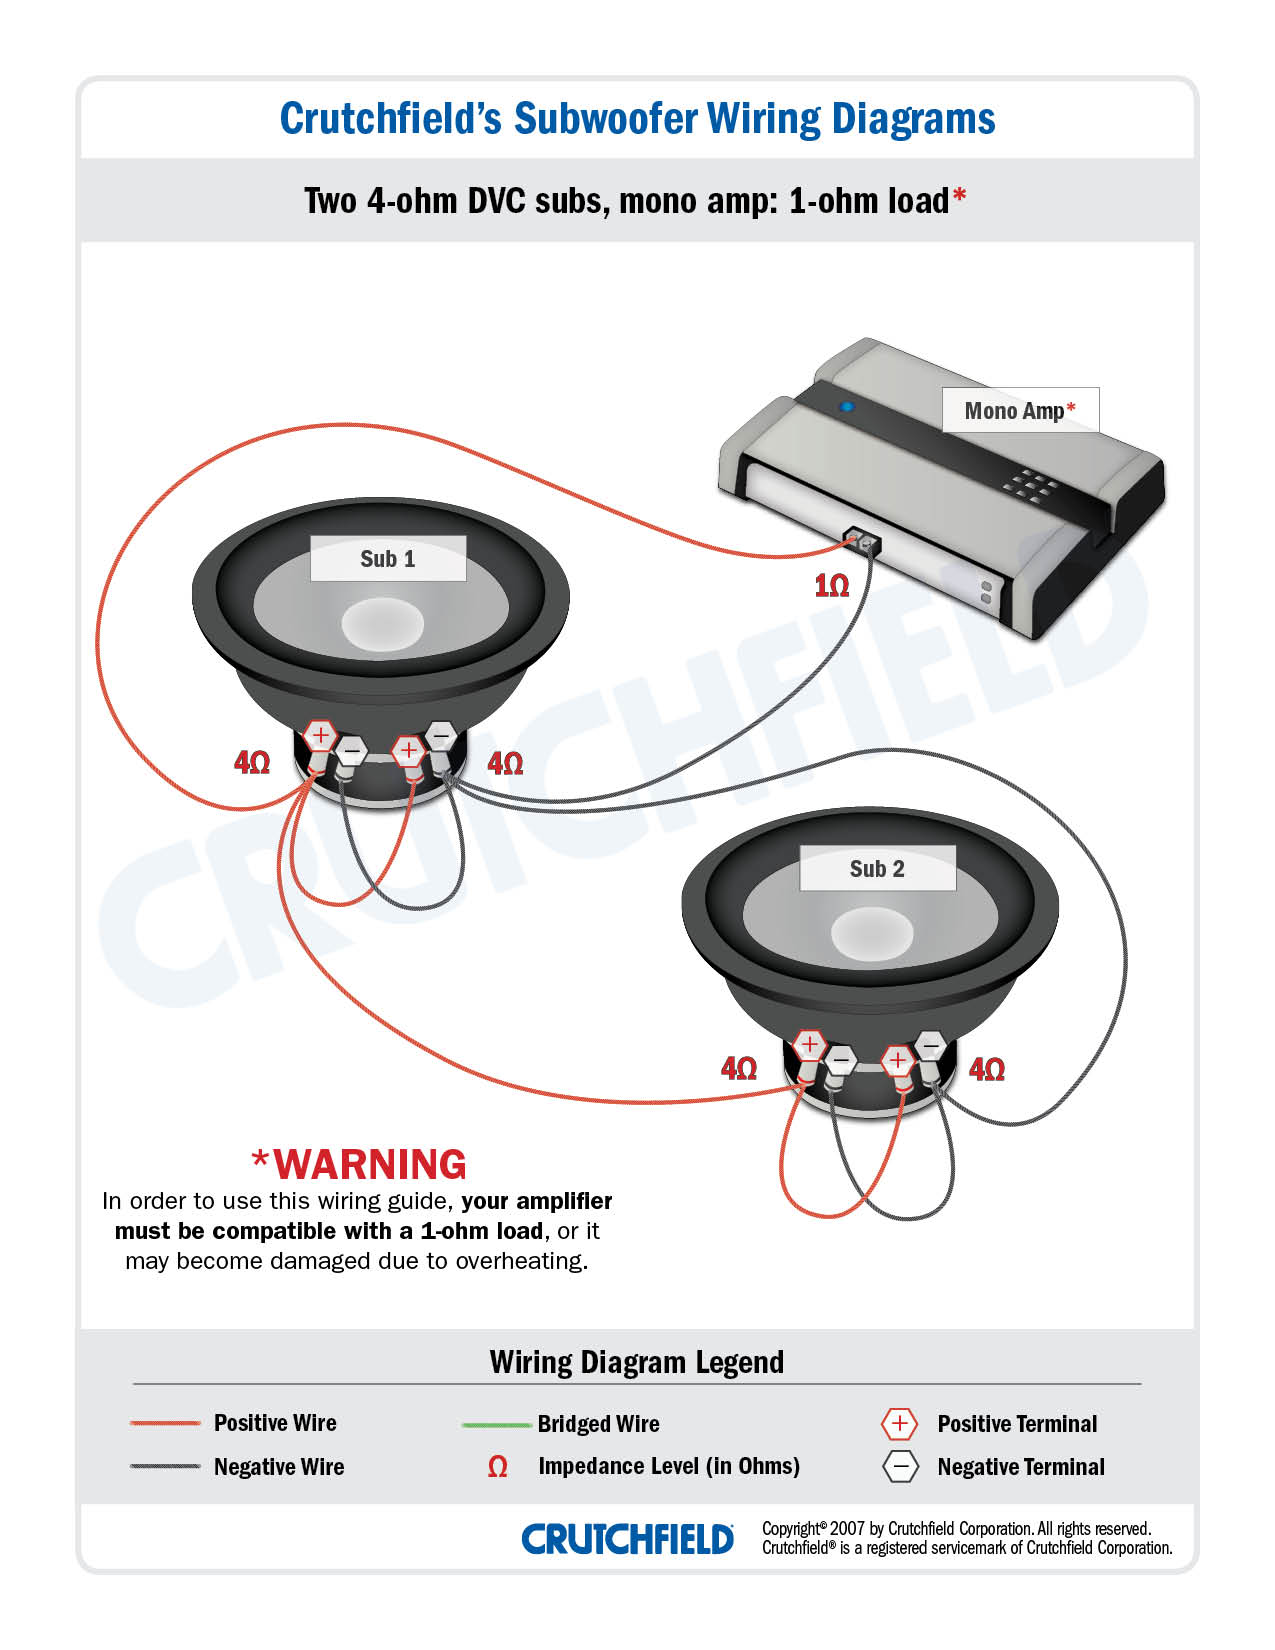 [DIAGRAM_38DE]  Amplifier Wiring Diagrams: How to Add an Amplifier to Your Car Audio System | In Wall Speaker Wiring Diagram |  | Crutchfield